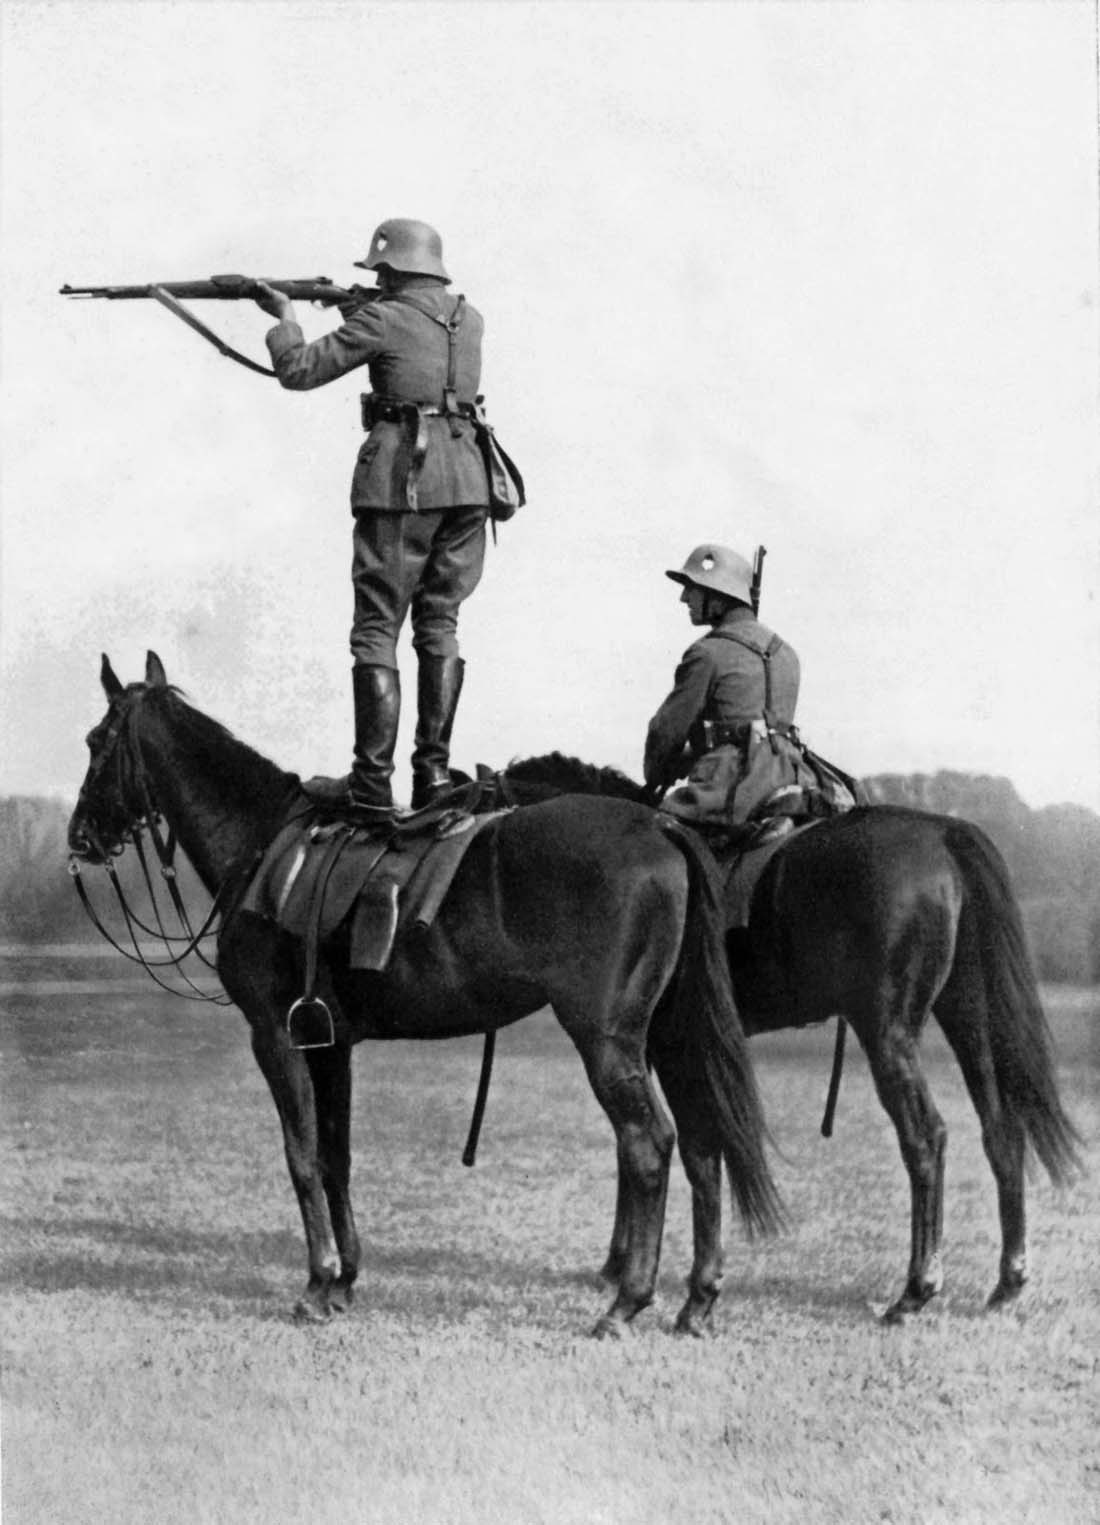 German soldiers take aim from the backs of horses, 1935